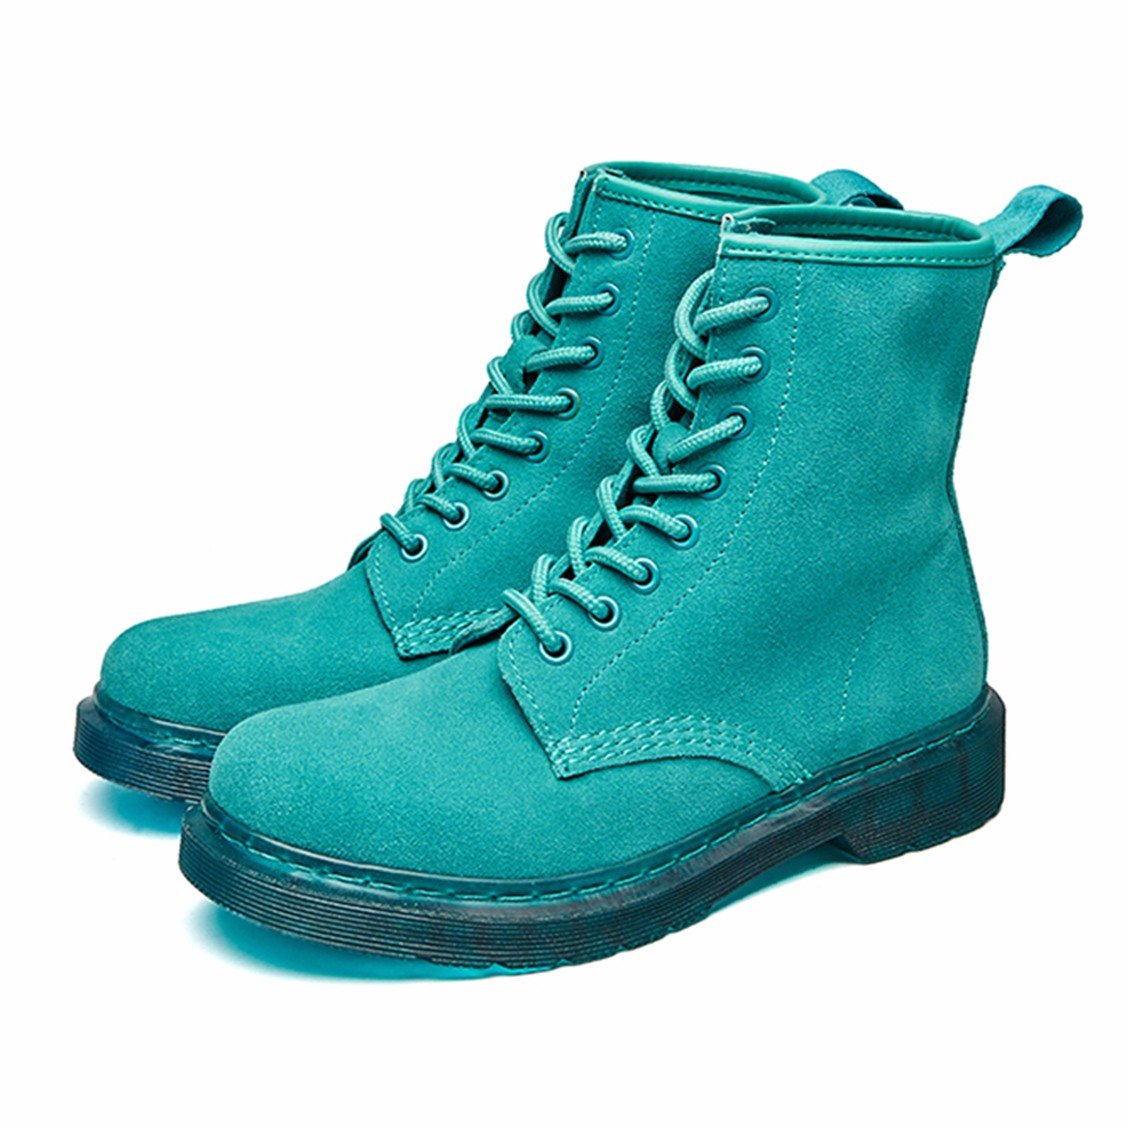 Modemoven Women's Round Toe Lase-up Ankle Boots Ladies Leather Combat Booties Fashion Martens Boots B0773Q6KGK 8.5 B(M) US|Green Suede